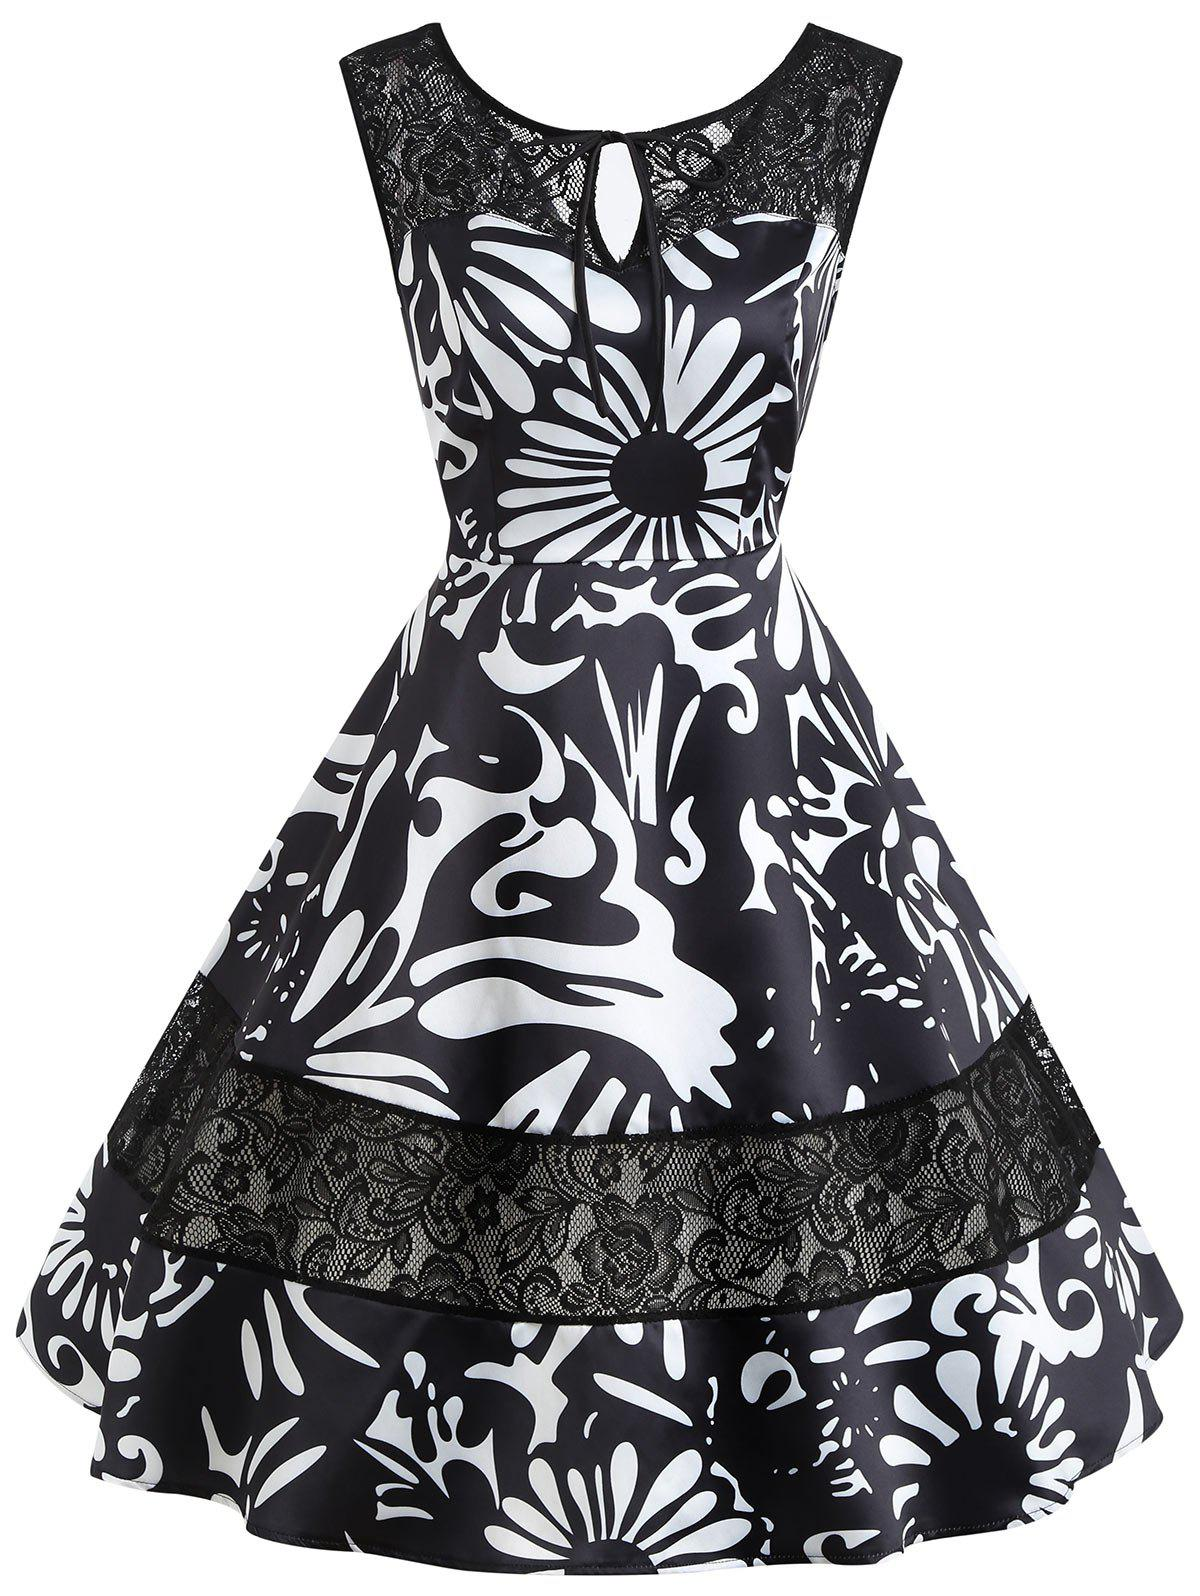 Keyhole Floral Print Lace Insert Vintage Dress - BLACK M